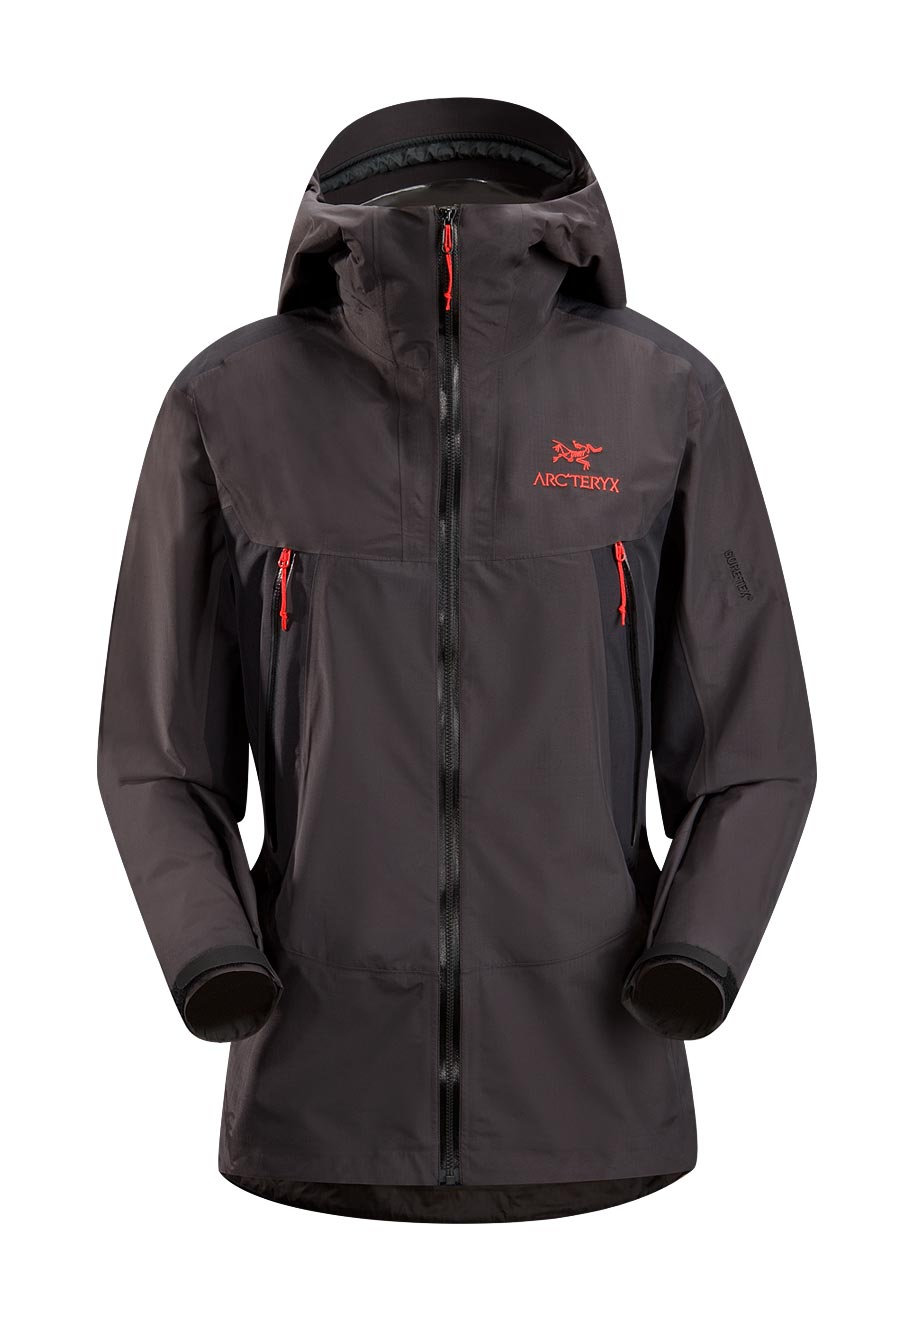 Arcteryx Jackets Women Blackbird Alpha SL Hybrid Jacket - New